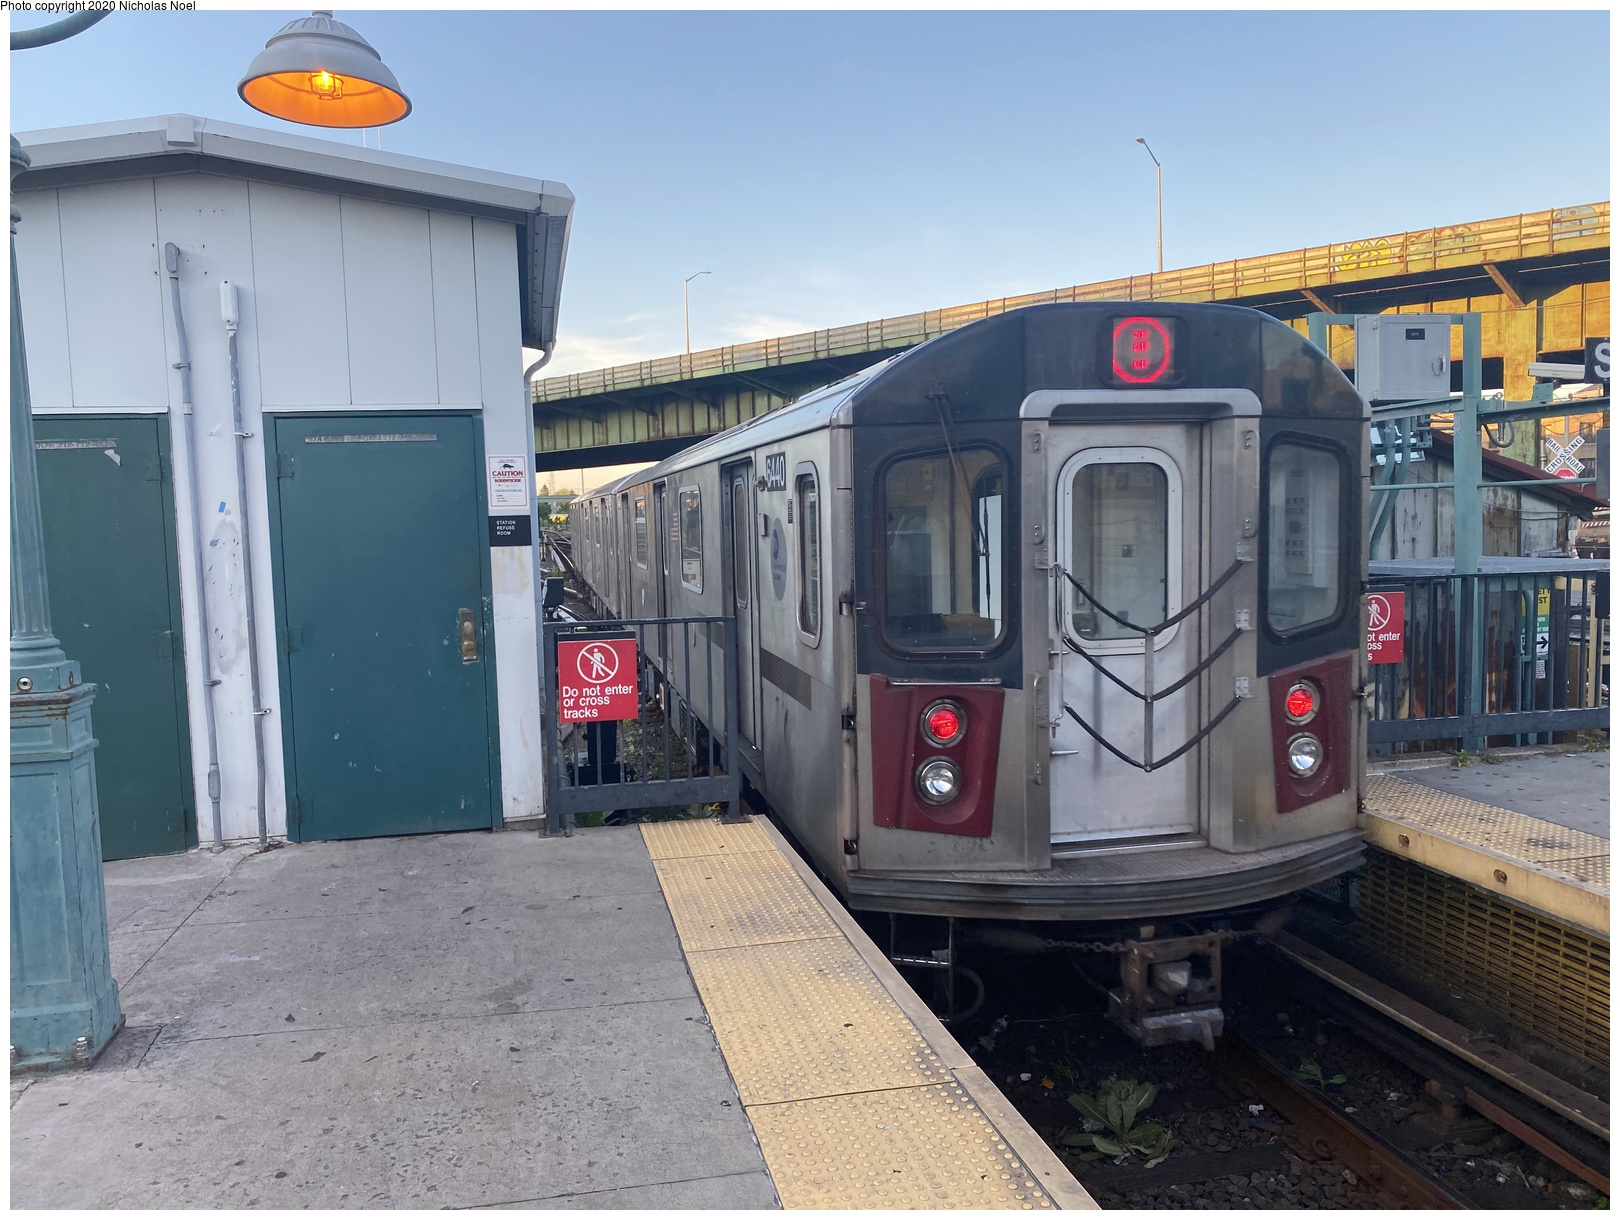 (190k, 1044x727)<br><b>Country:</b> United States<br><b>City:</b> New York<br><b>System:</b> New York City Transit<br><b>Line:</b> BMT Nassau Street/Jamaica Line<br><b>Location:</b> Broadway/East New York (Broadway Junction) <br><b>Route:</b> Work Service<br><b>Car:</b> BMT Elevated Gate Car  <br><b>Photo by:</b> Joel Shanus<br><b>Notes:</b> BU 1300 series Gate cars with flat car in middle in work service, circa 1954.<br><b>Viewed (this week/total):</b> 5 / 1400